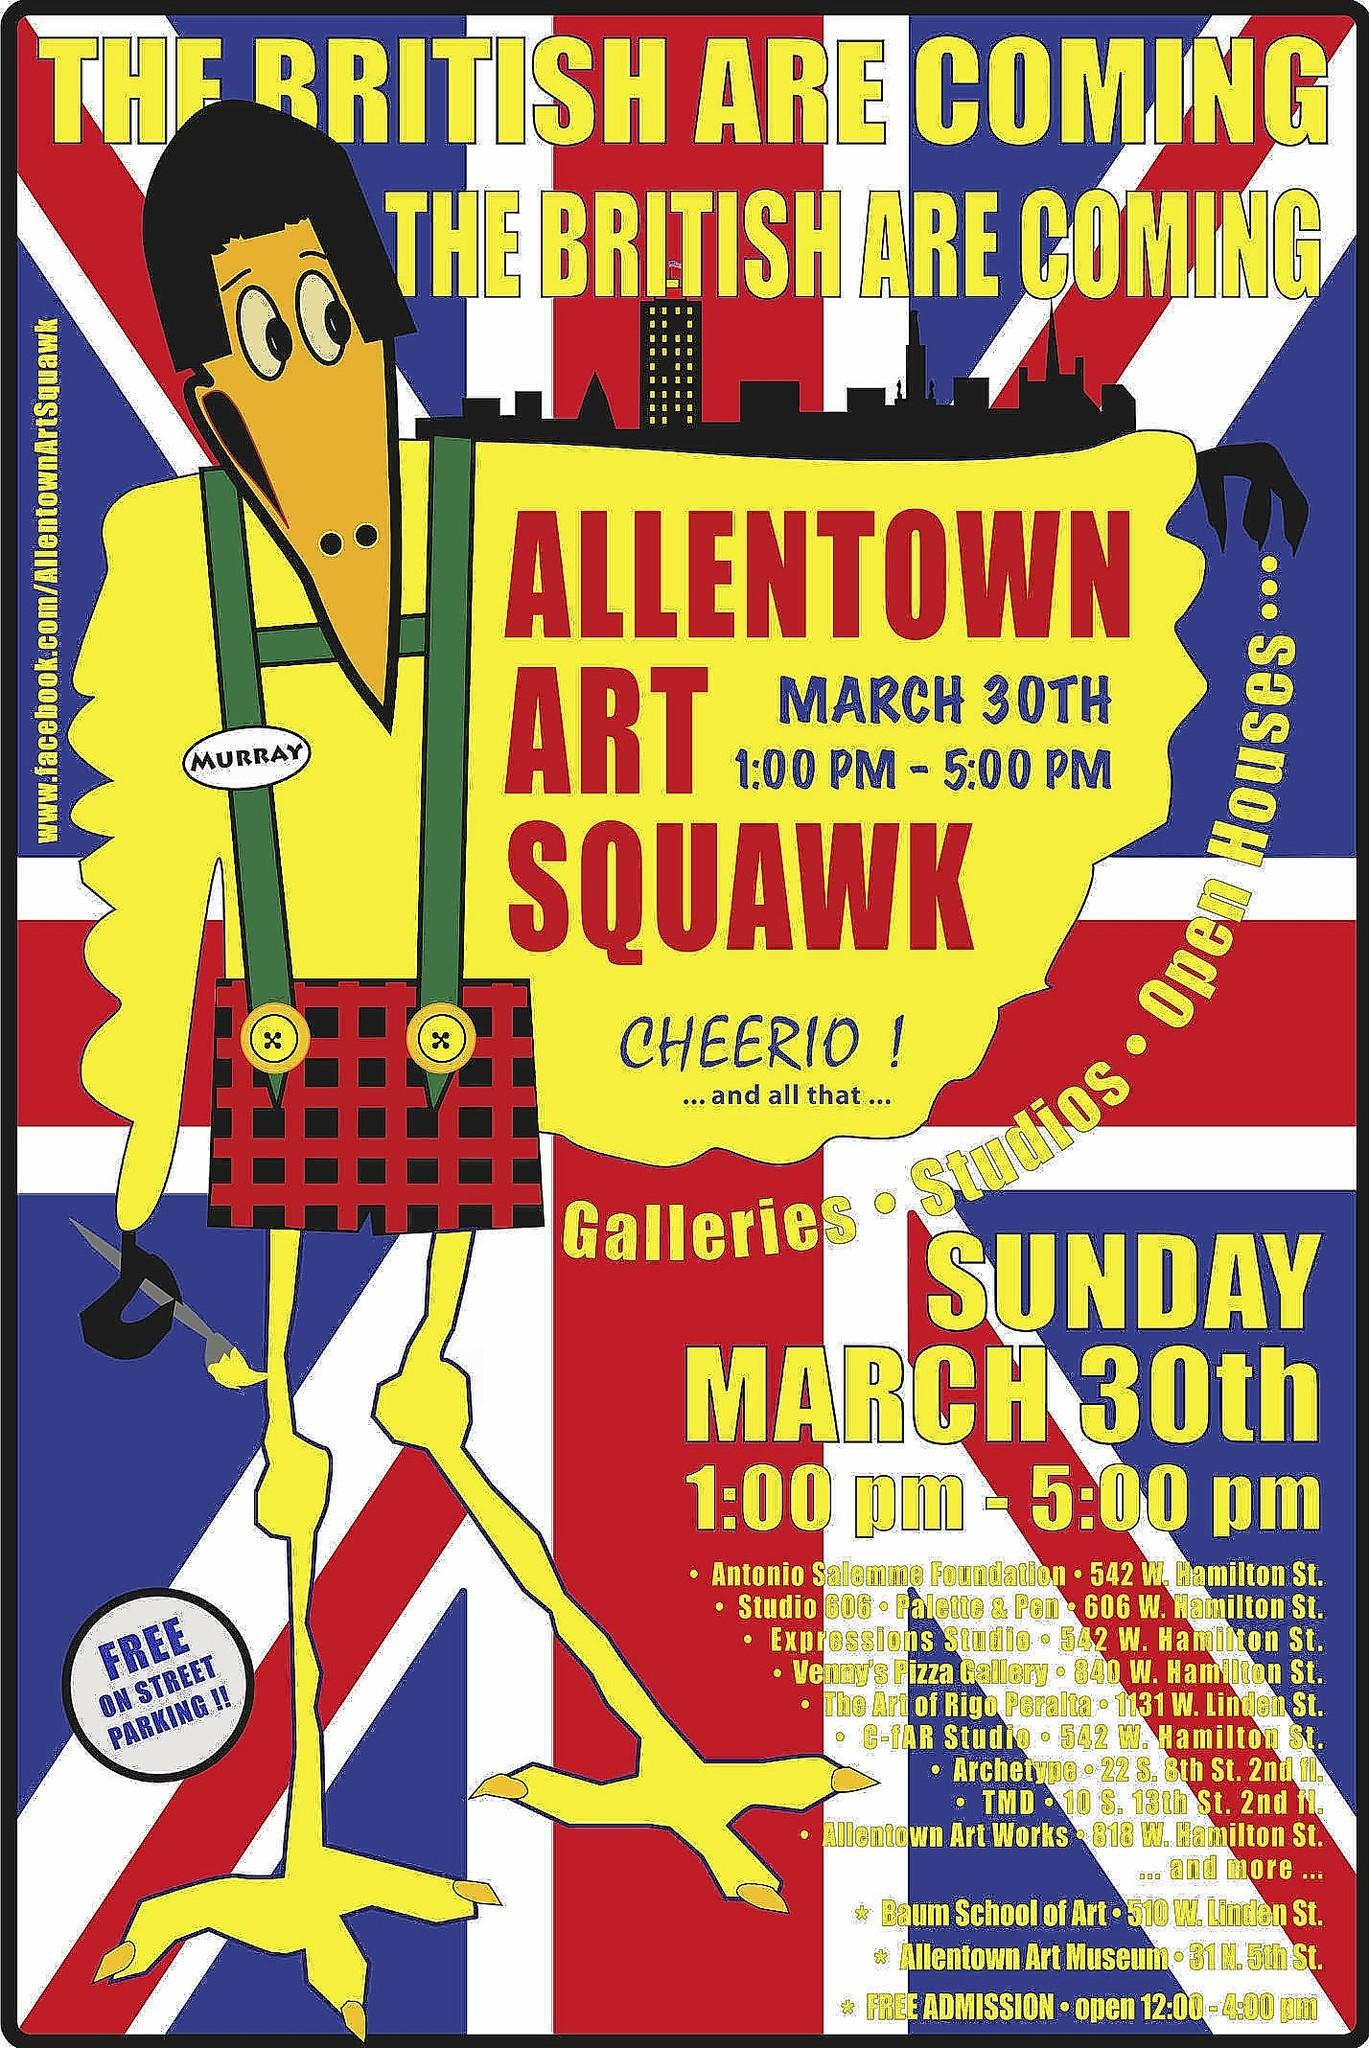 Allentown Art Squawk returns March 30 with a British theme.